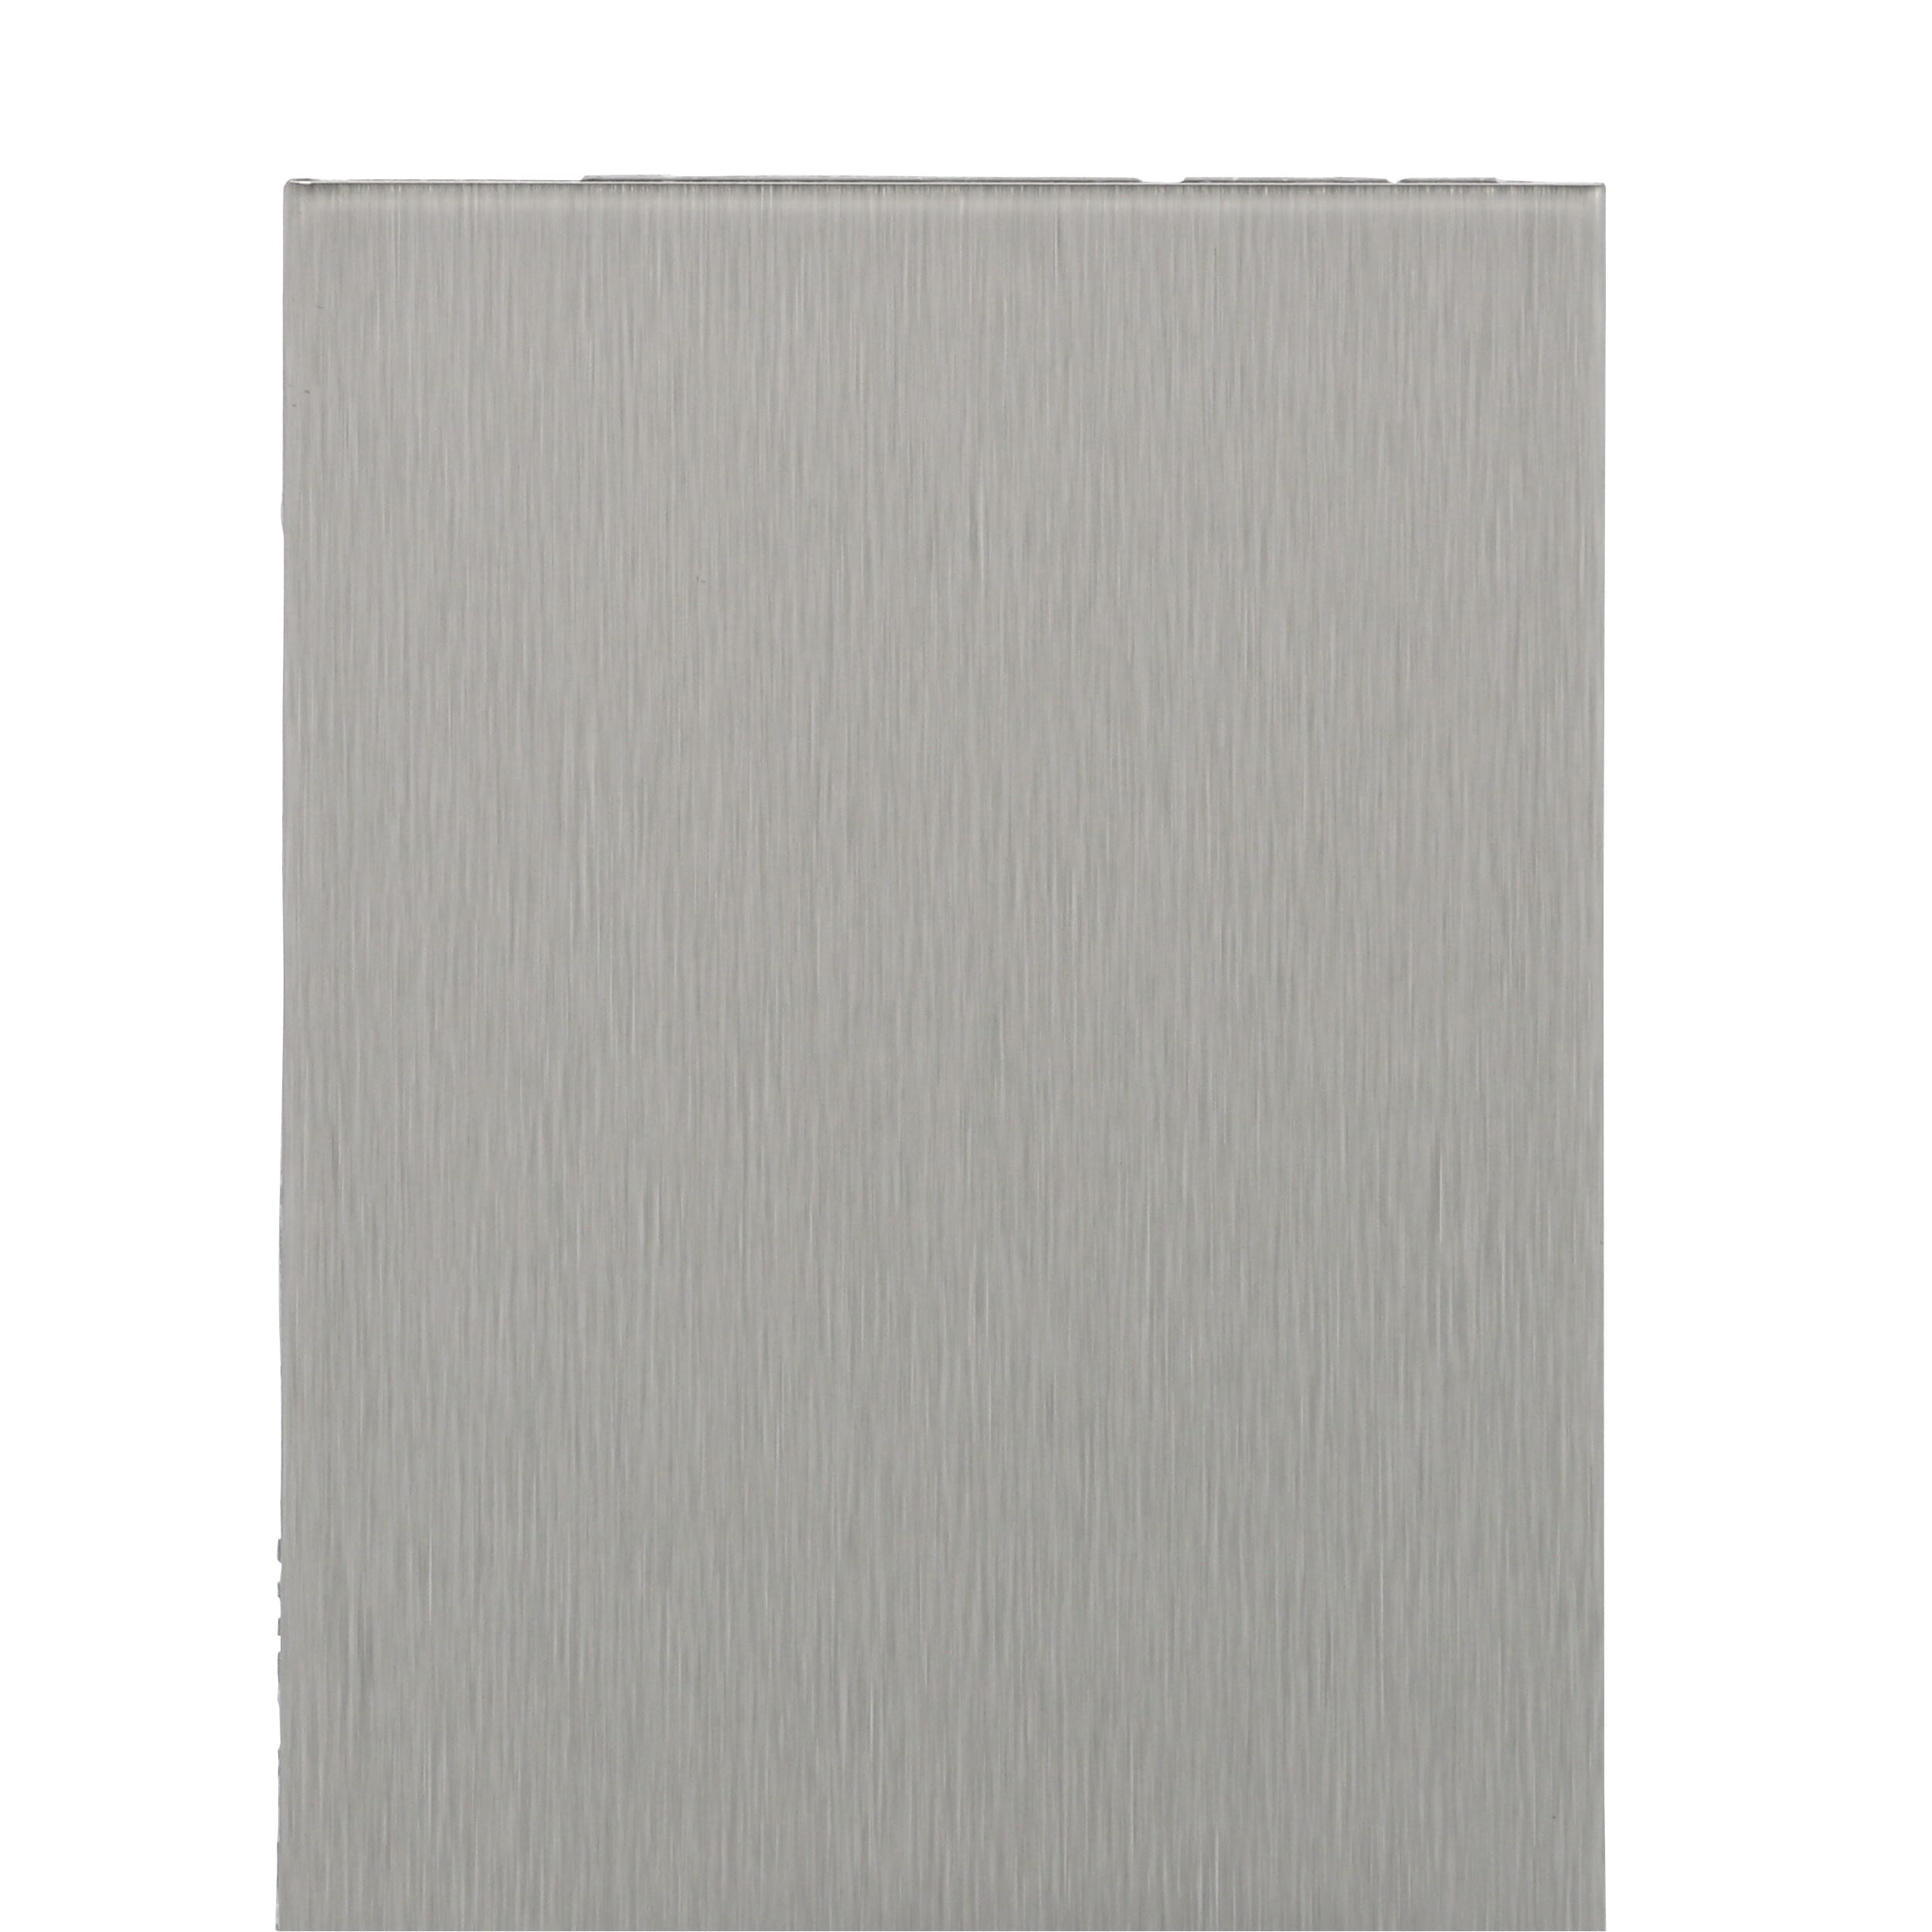 Aspect Long Grain 3 in. x 6 in. Metal Decorative Tile Backsplash in Brushed  Stainless (8-Pack)-A52-50 - The Home Depot